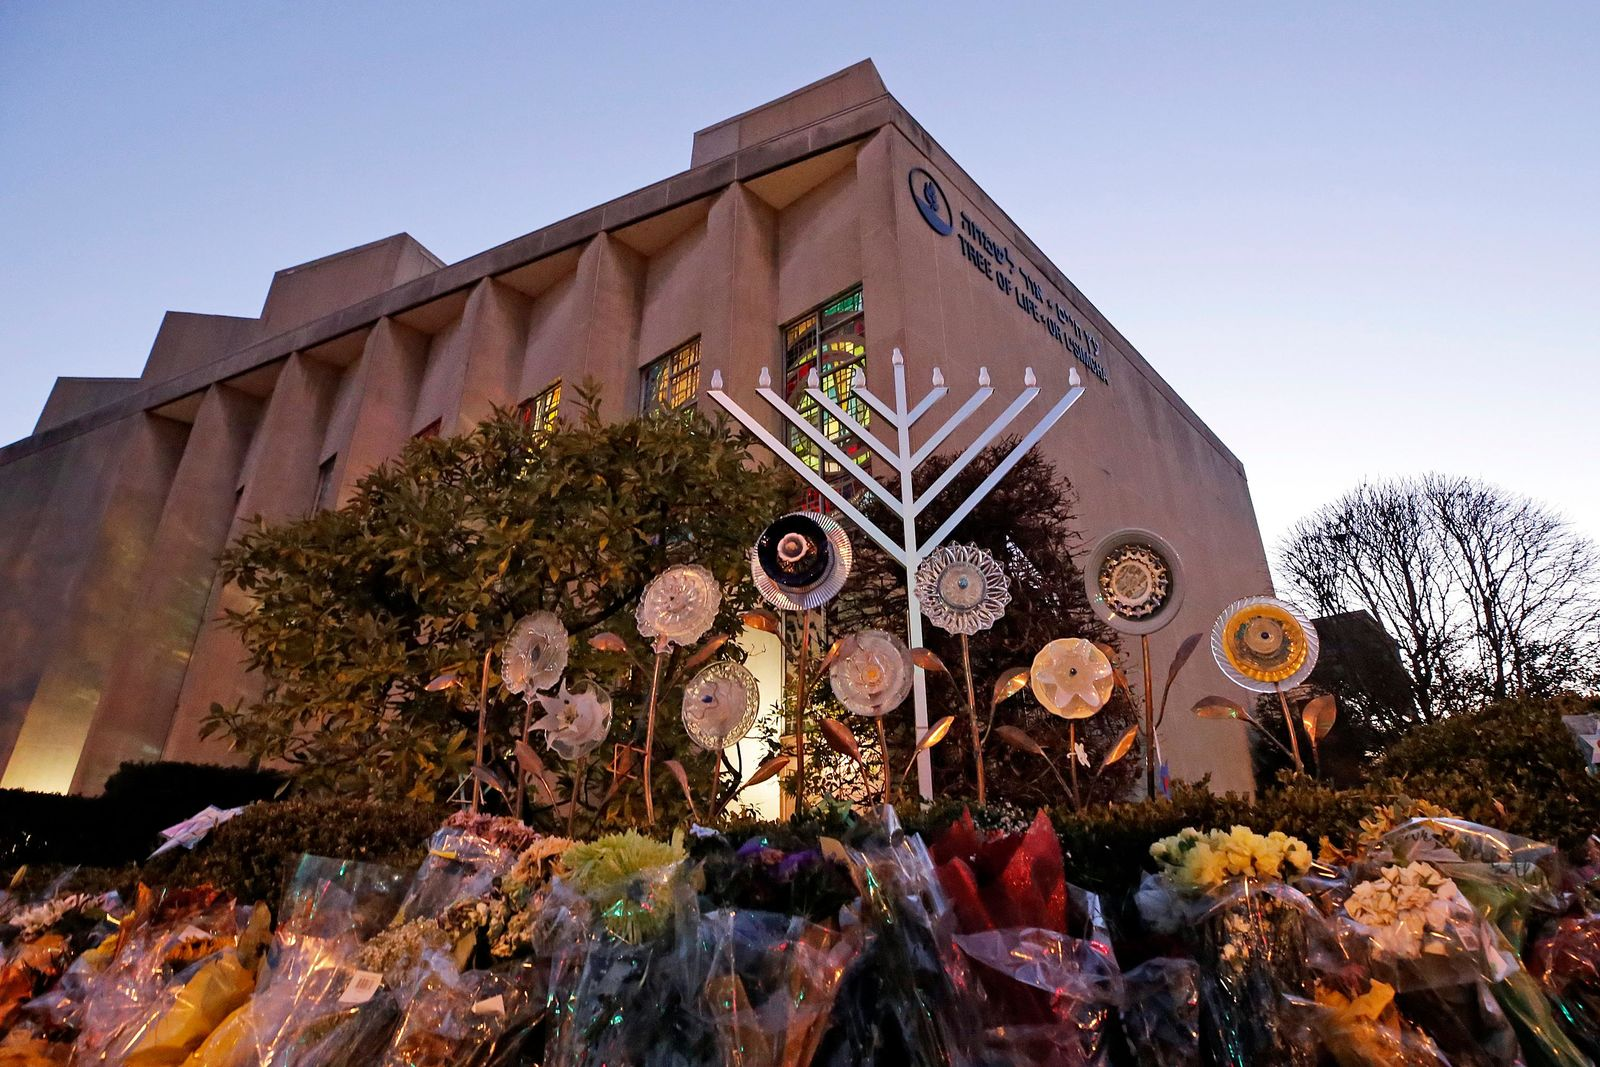 File - In this Sunday, Dec. 2, 2018 file photo, a menorah is installed outside the Tree of Life Synagogue in preparation for a celebration service at sundown on the first night of Hanukkah, in the Squirrel Hill neighborhood of Pittsburgh. (AP Photo/Gene J. Puskar, File)